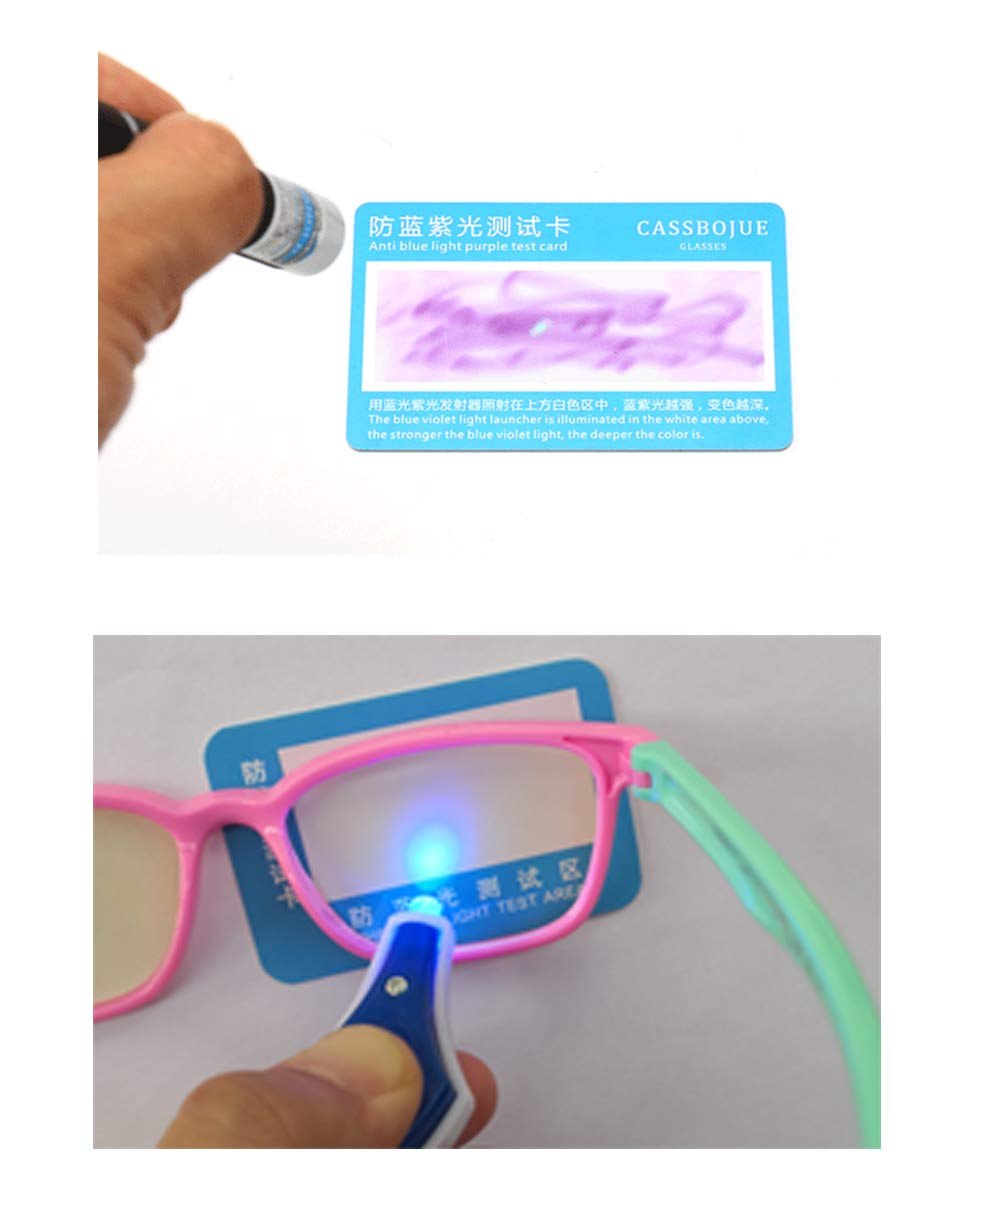 Anti Blue Light Glasses for Kids Computer Glasses,UV Protection Anti Glare Eyeglasses Computer Glasses Video Gaming Glasses for Children Silicone deep Blue